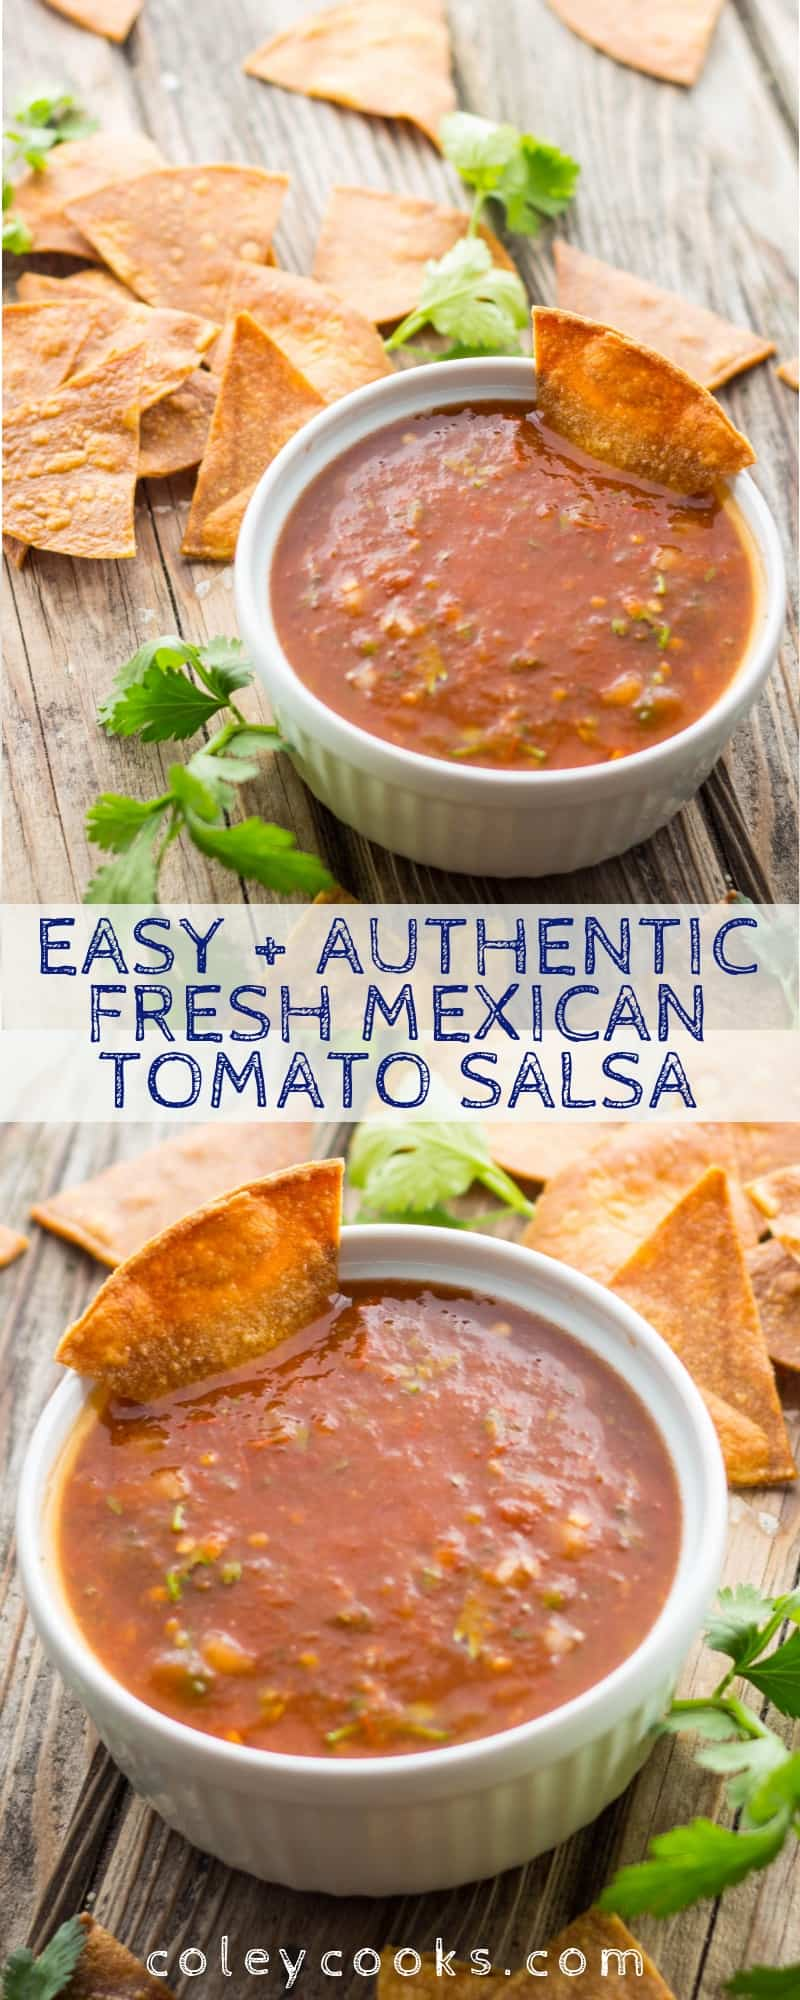 This easy recipe for Mexican Tomato Salsa is an authentic, spicy and flavorful dip for chips or a sauce for your favorite Mexican dish. Great for Cinco de Mayo! #cinco #Mexican #easy #authentic #tomato #spicy #salsa #recipe #chips #dip #snacks | ColeyCooks.com